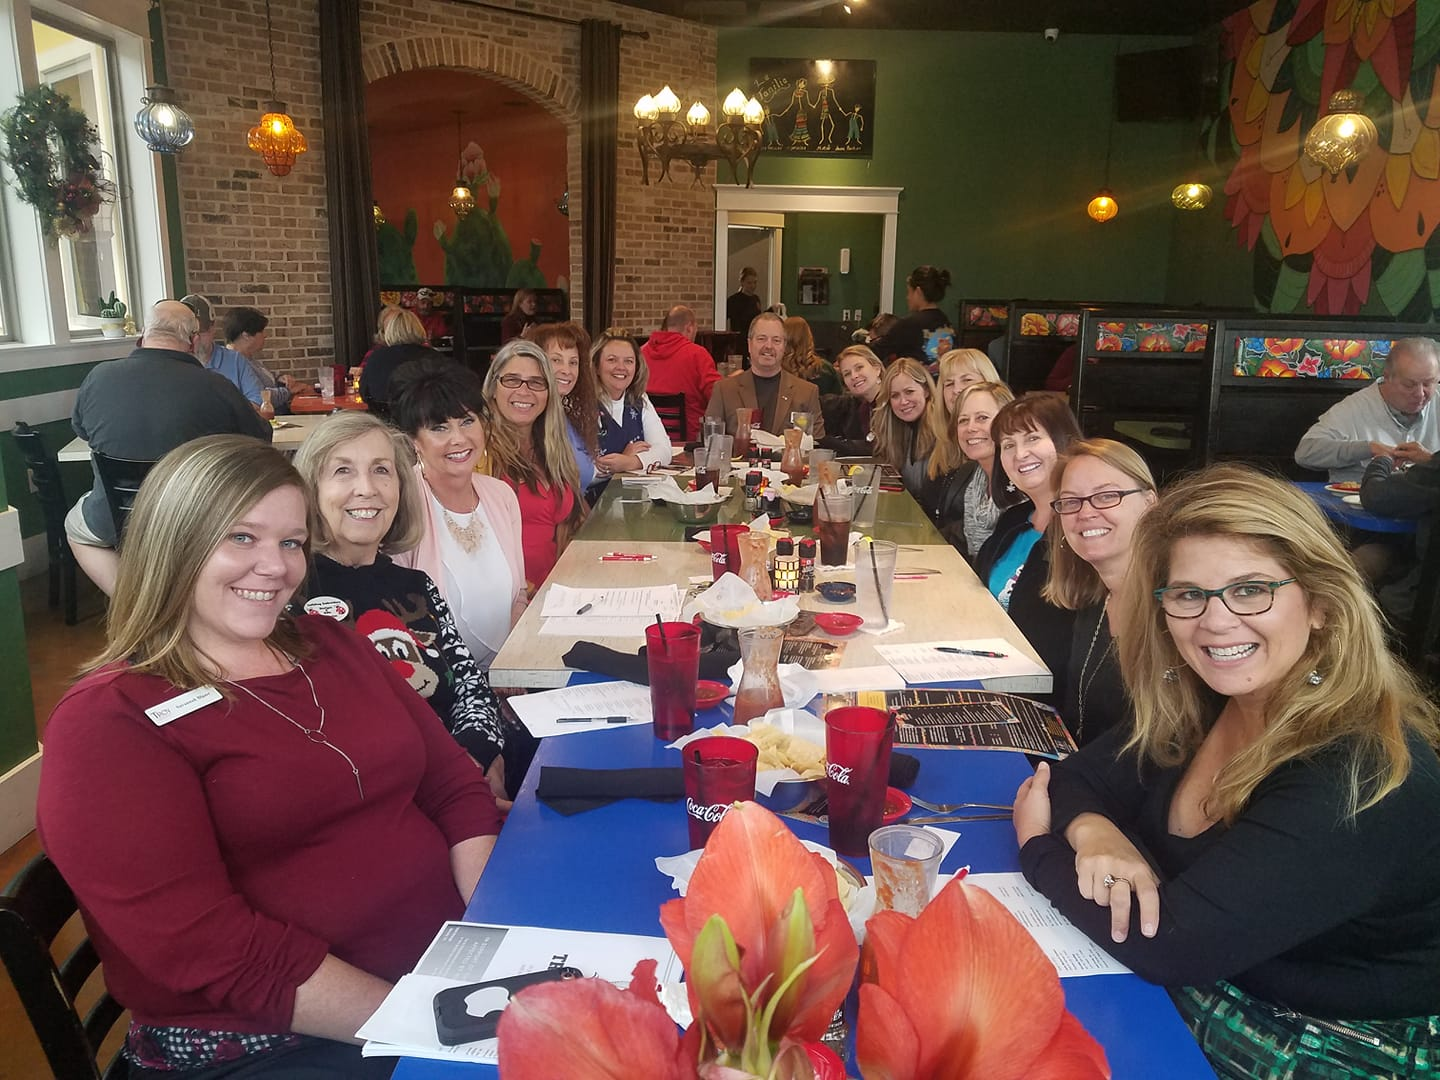 Members of the Ambassadors Committee enjoy a lunch meeting at Los Antojitos.